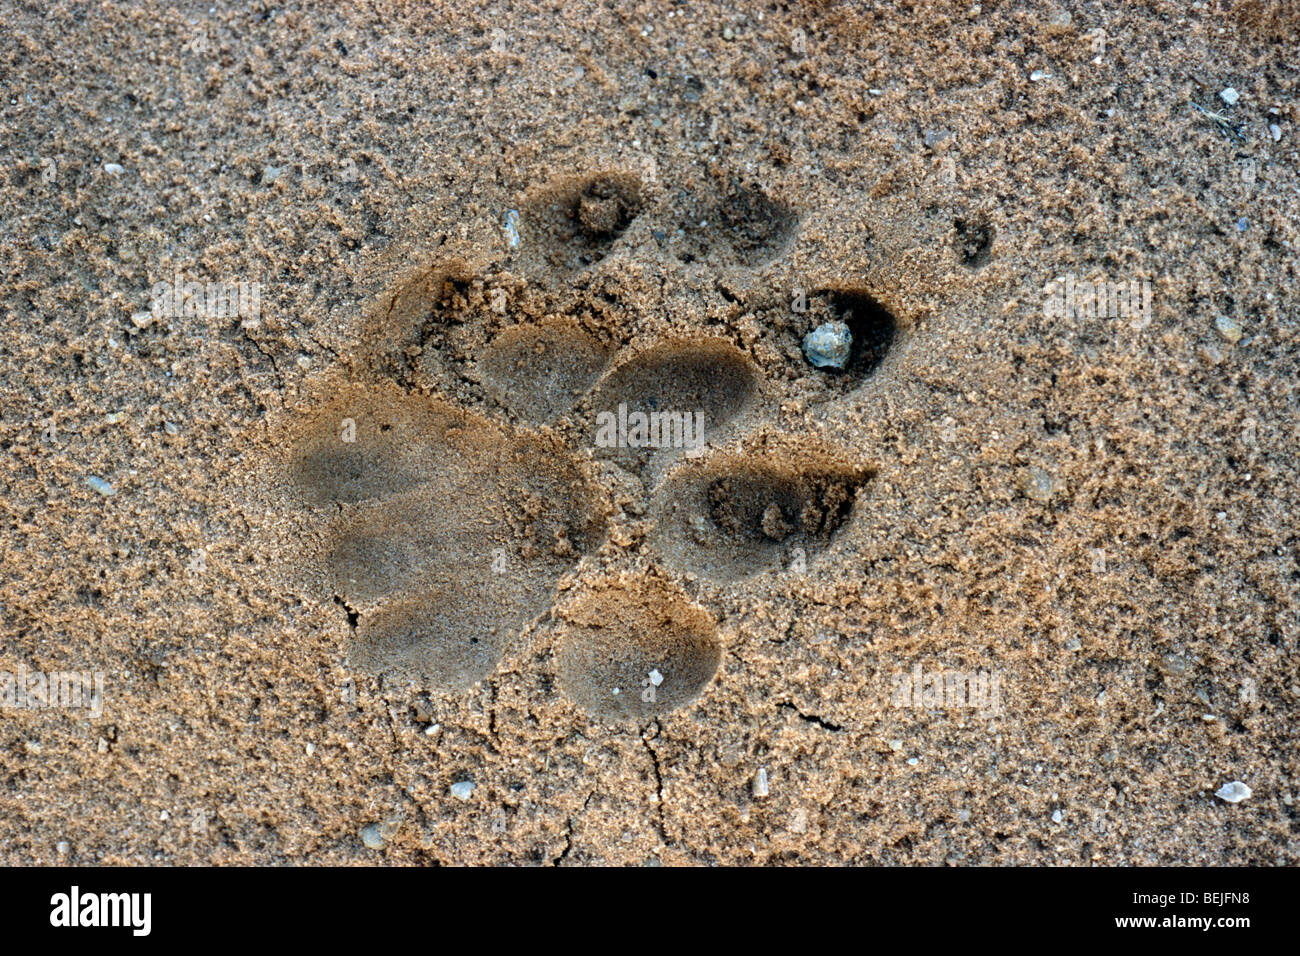 lion track panthera leo footprint of paw imprinted in the sand